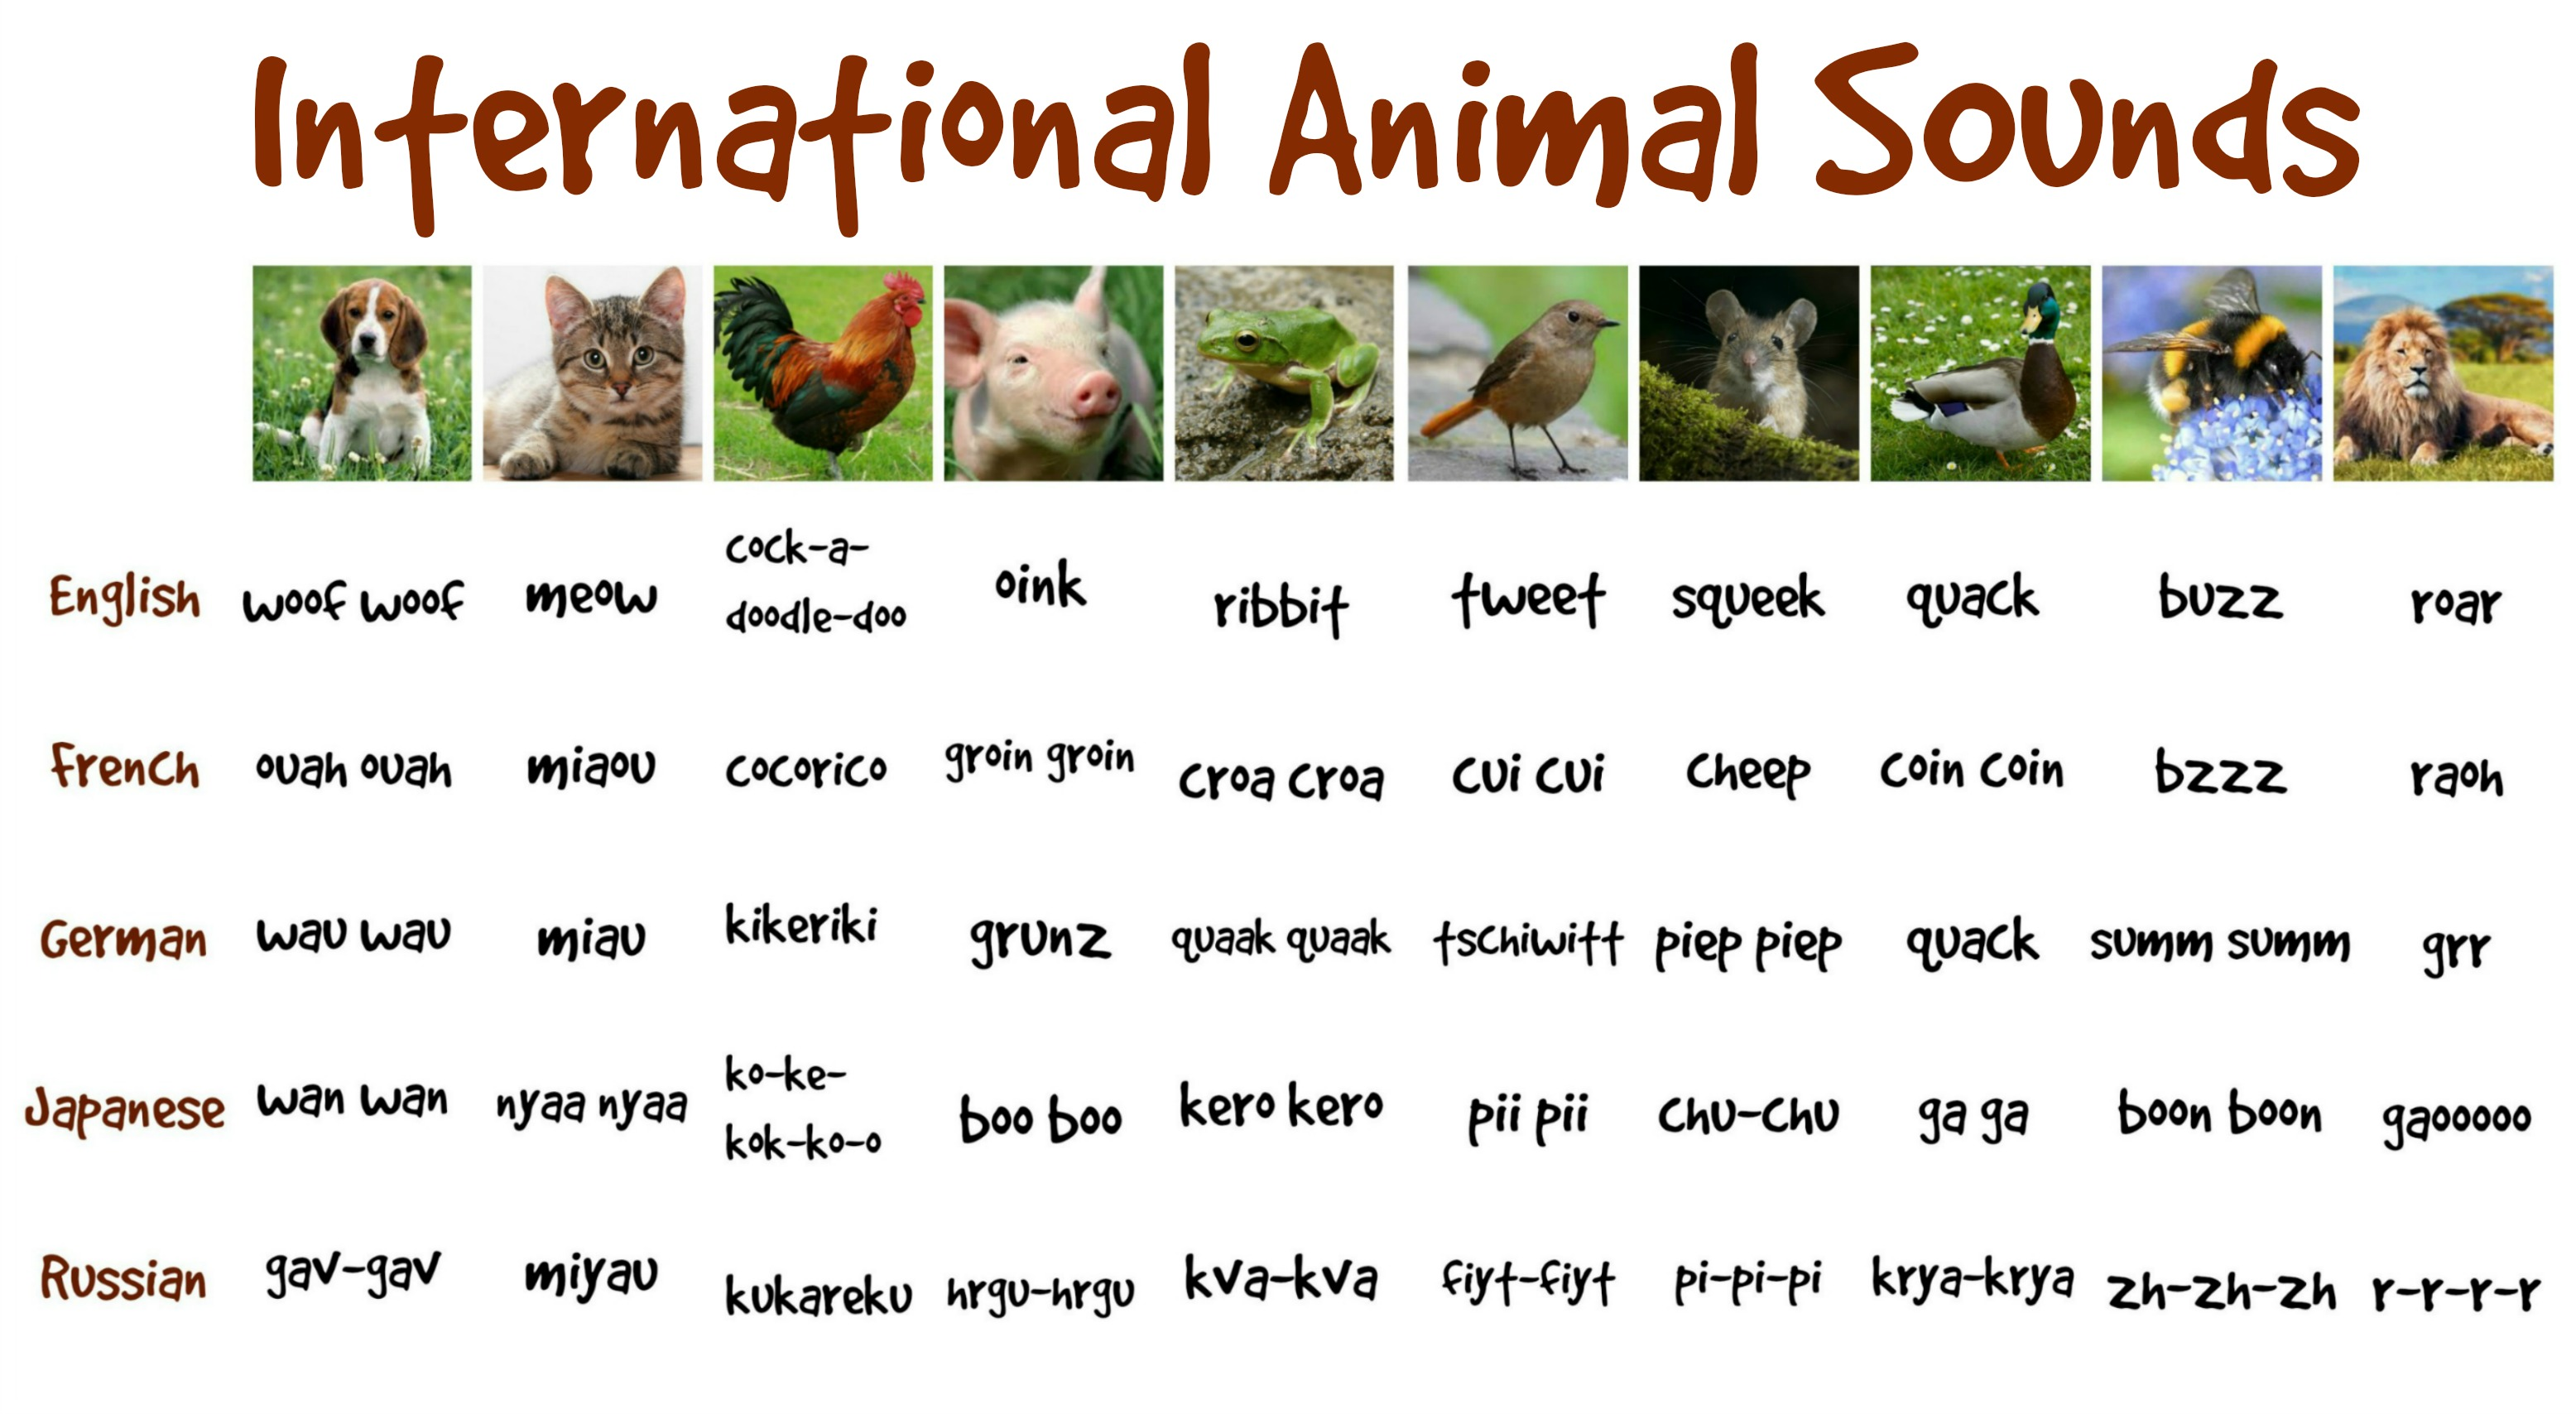 sounds animal funny international animals sound fun chart different languages very zh rooster japan funwithkids boo